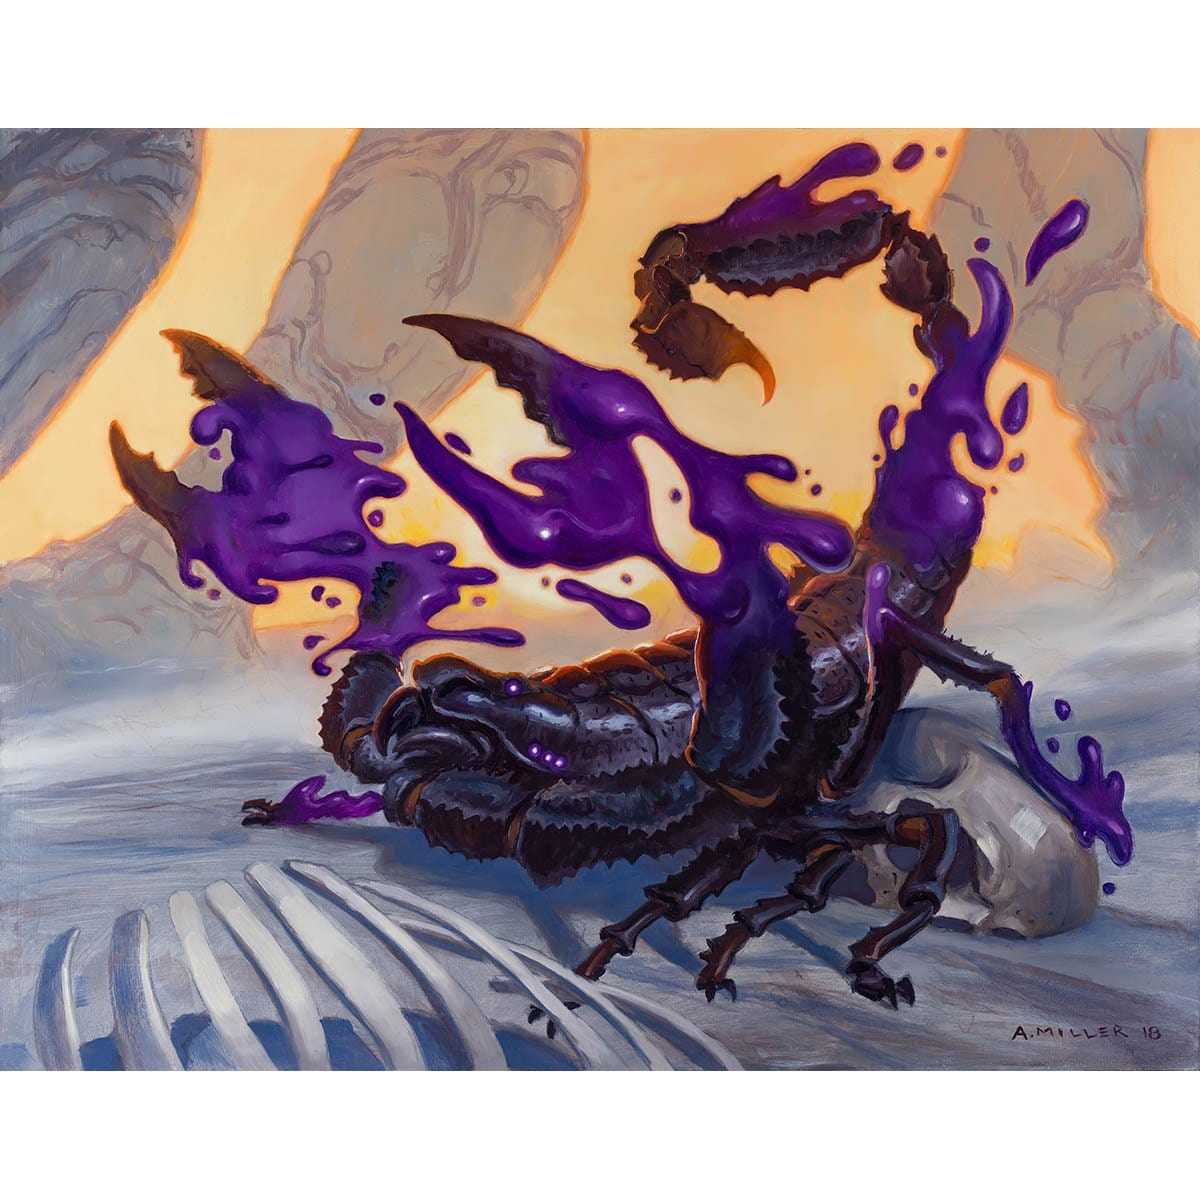 Venomous Changeling Print - Print - Original Magic Art - Accessories for Magic the Gathering and other card games